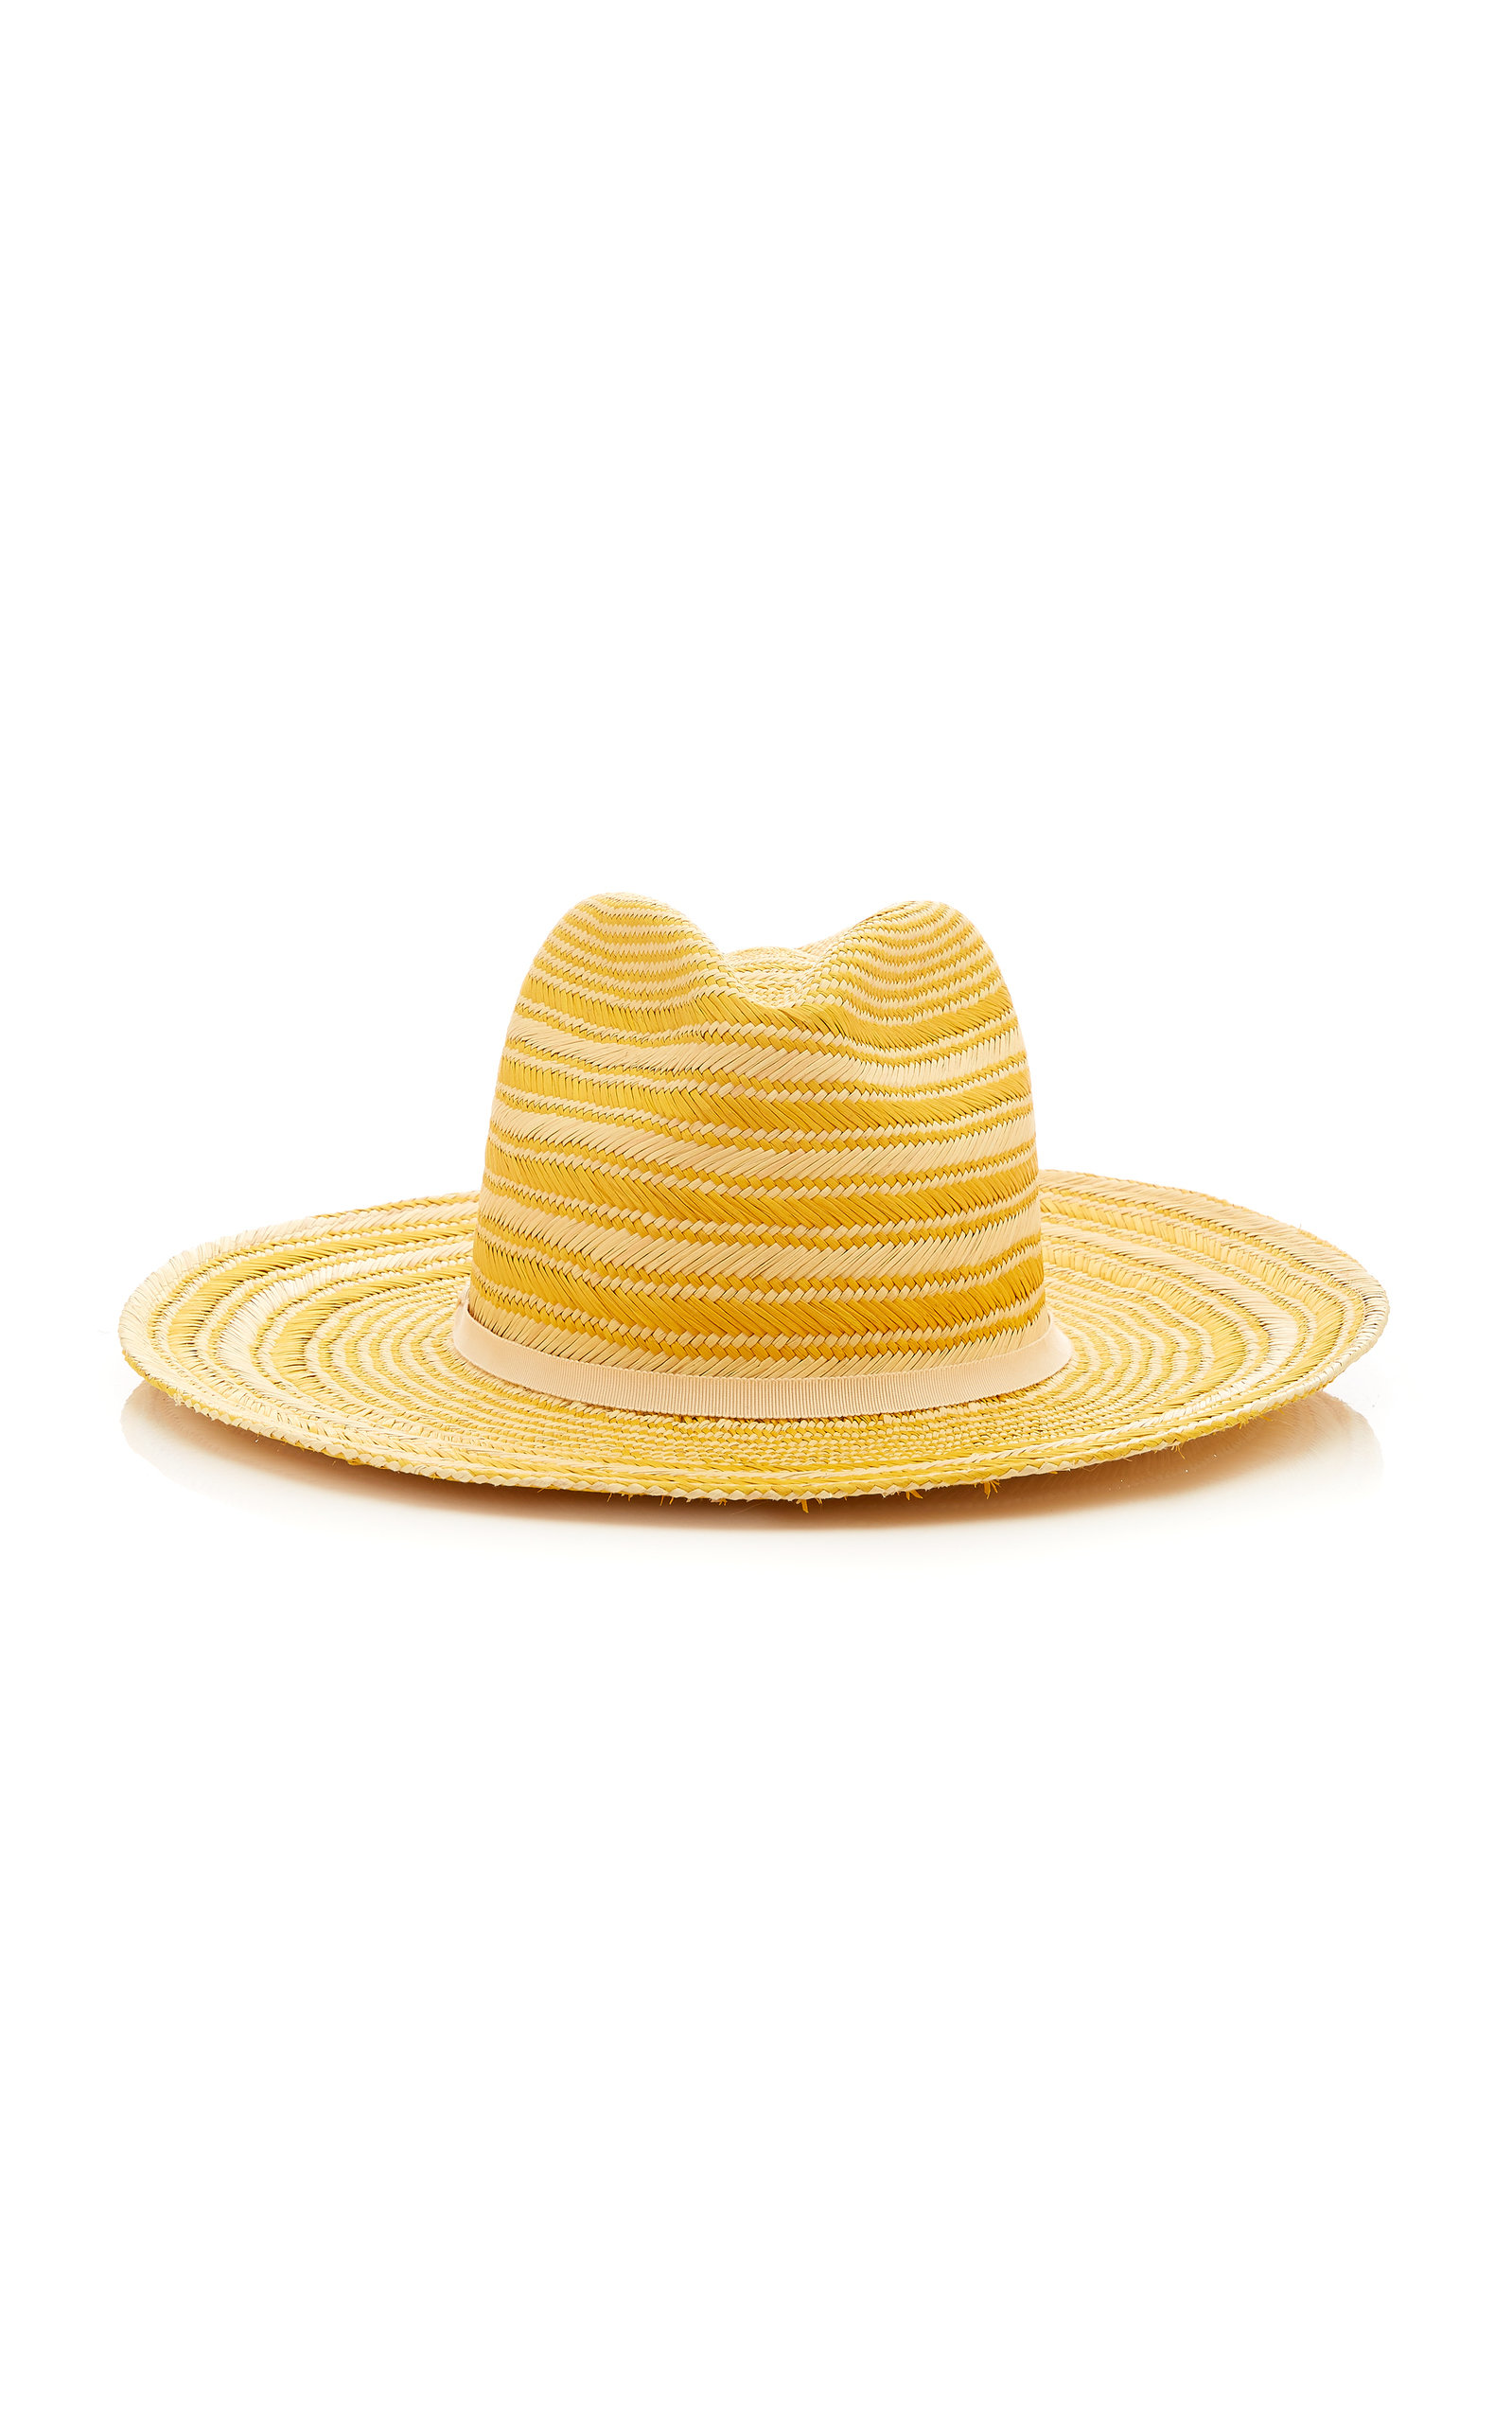 YESTADT MILLINERY Somba Woven Straw Hat in Yellow